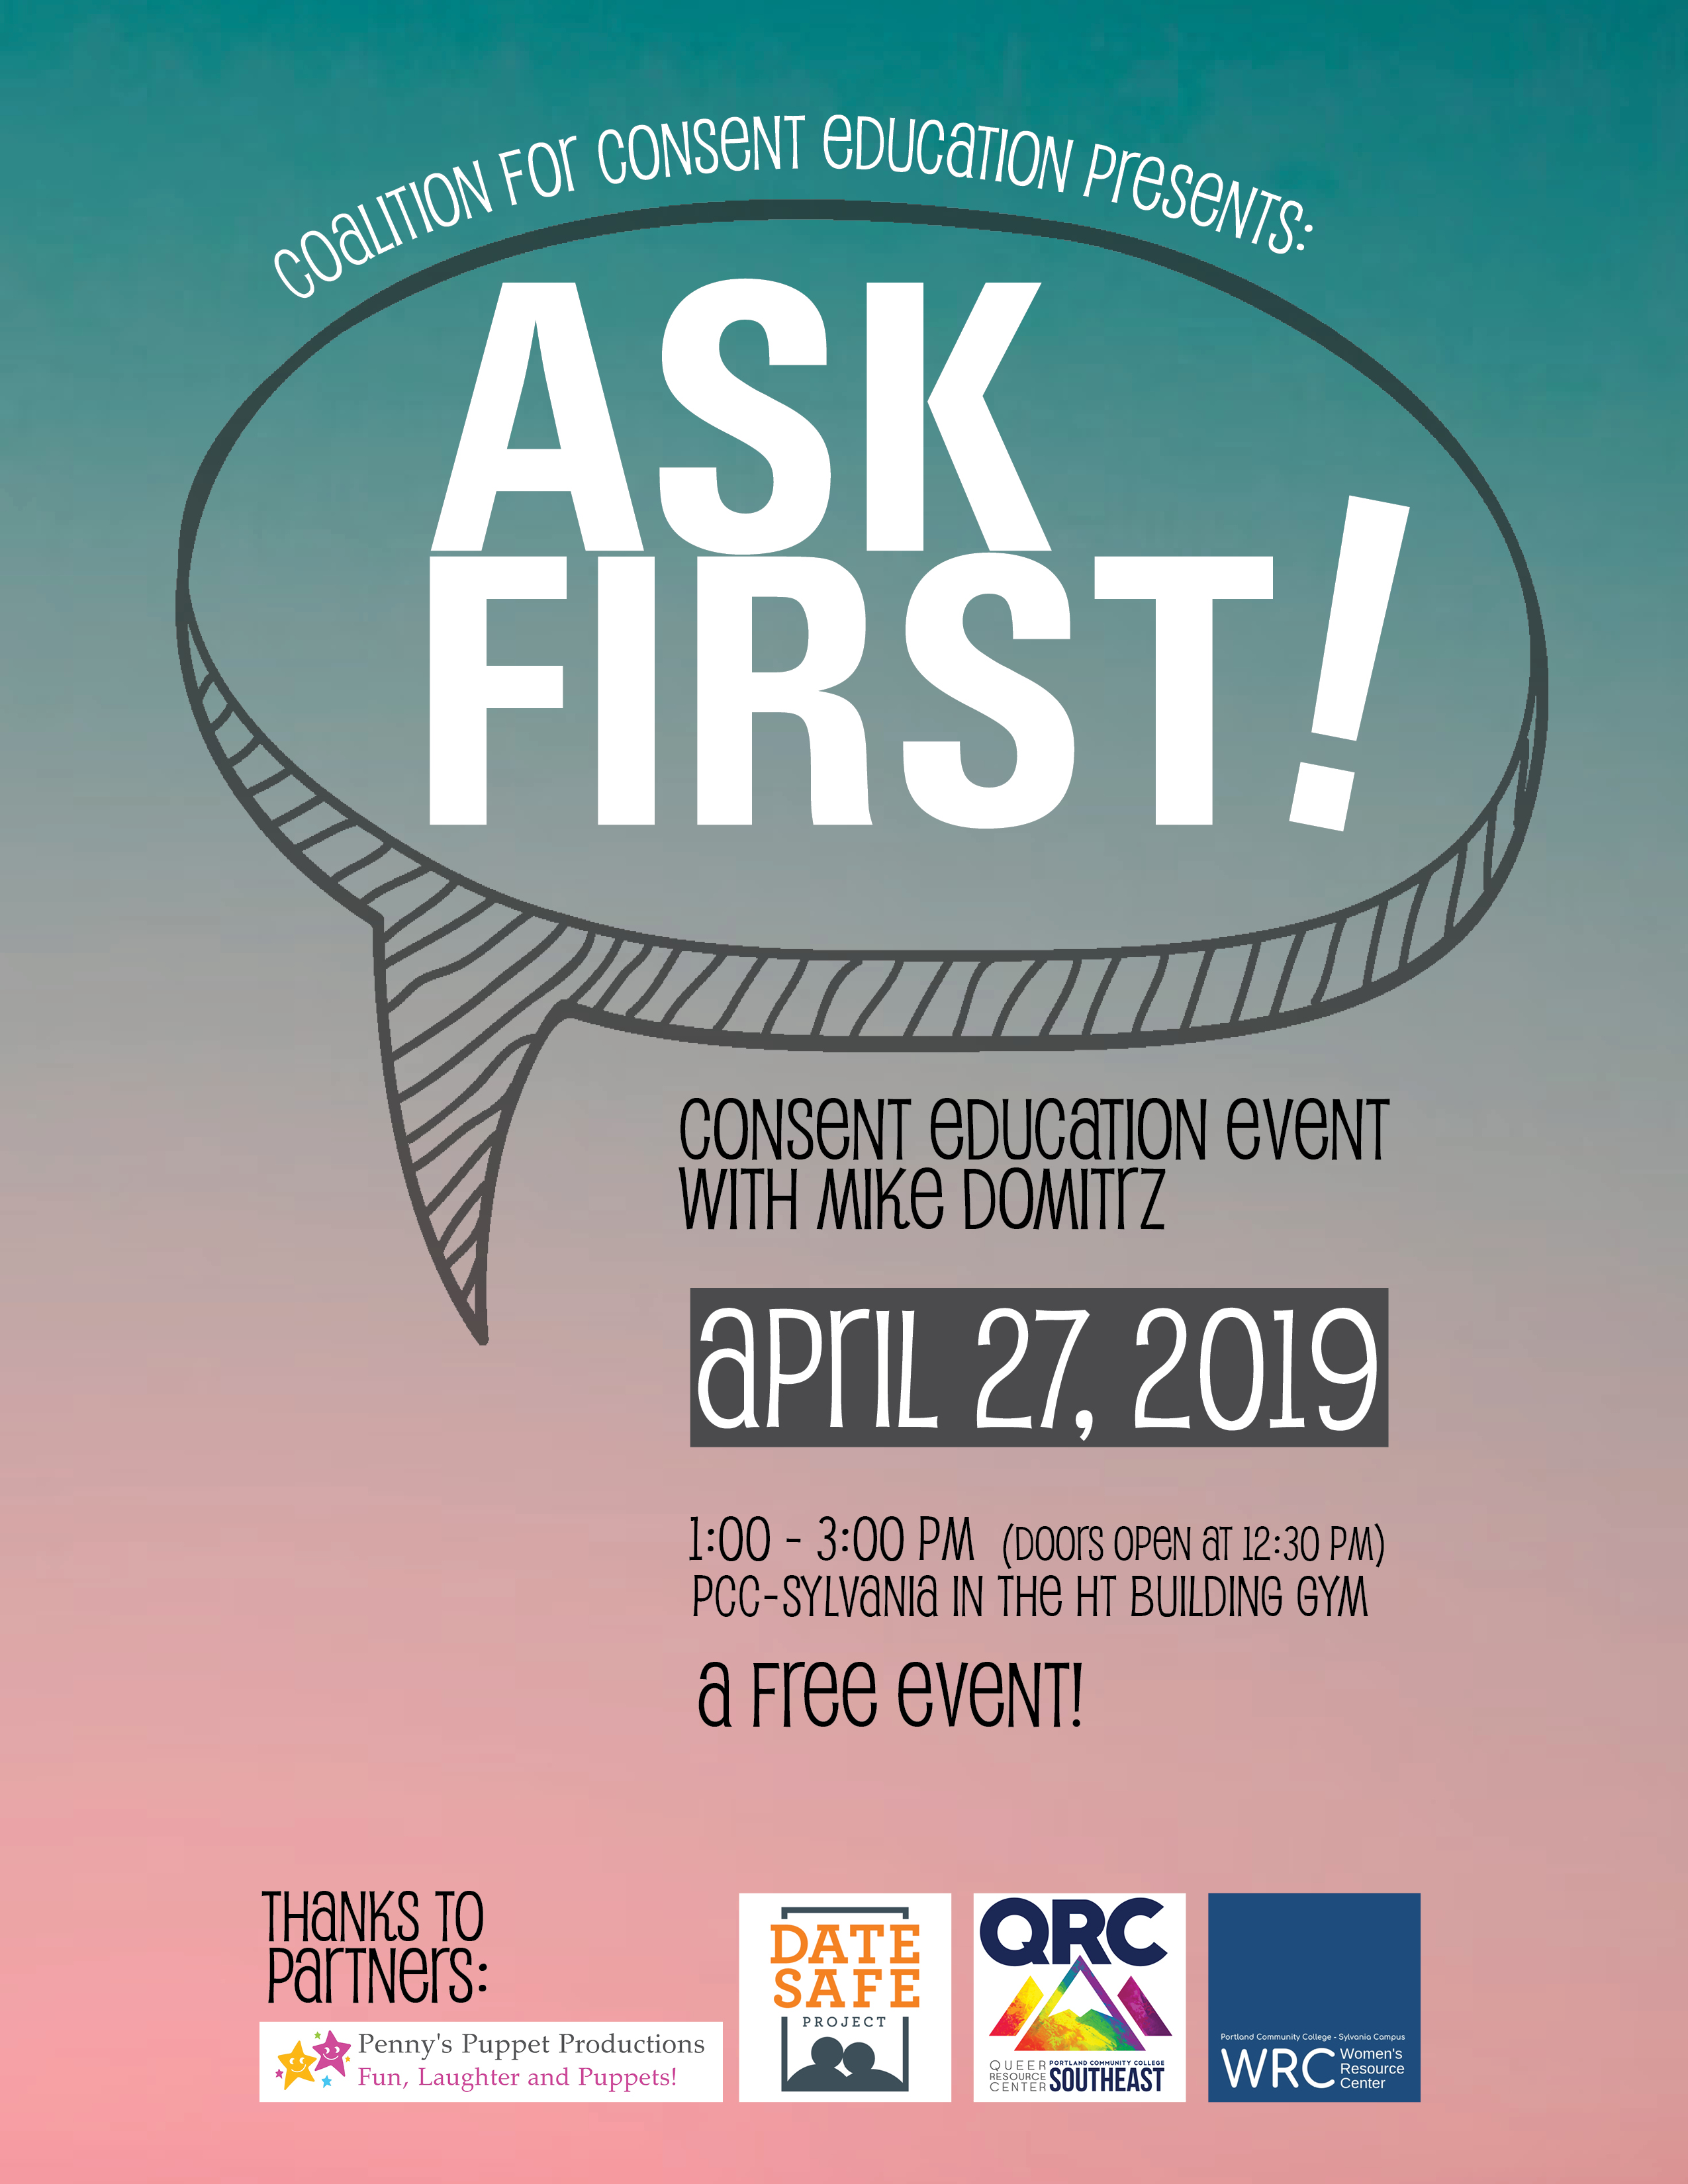 Ask First! Free Consent Education Event